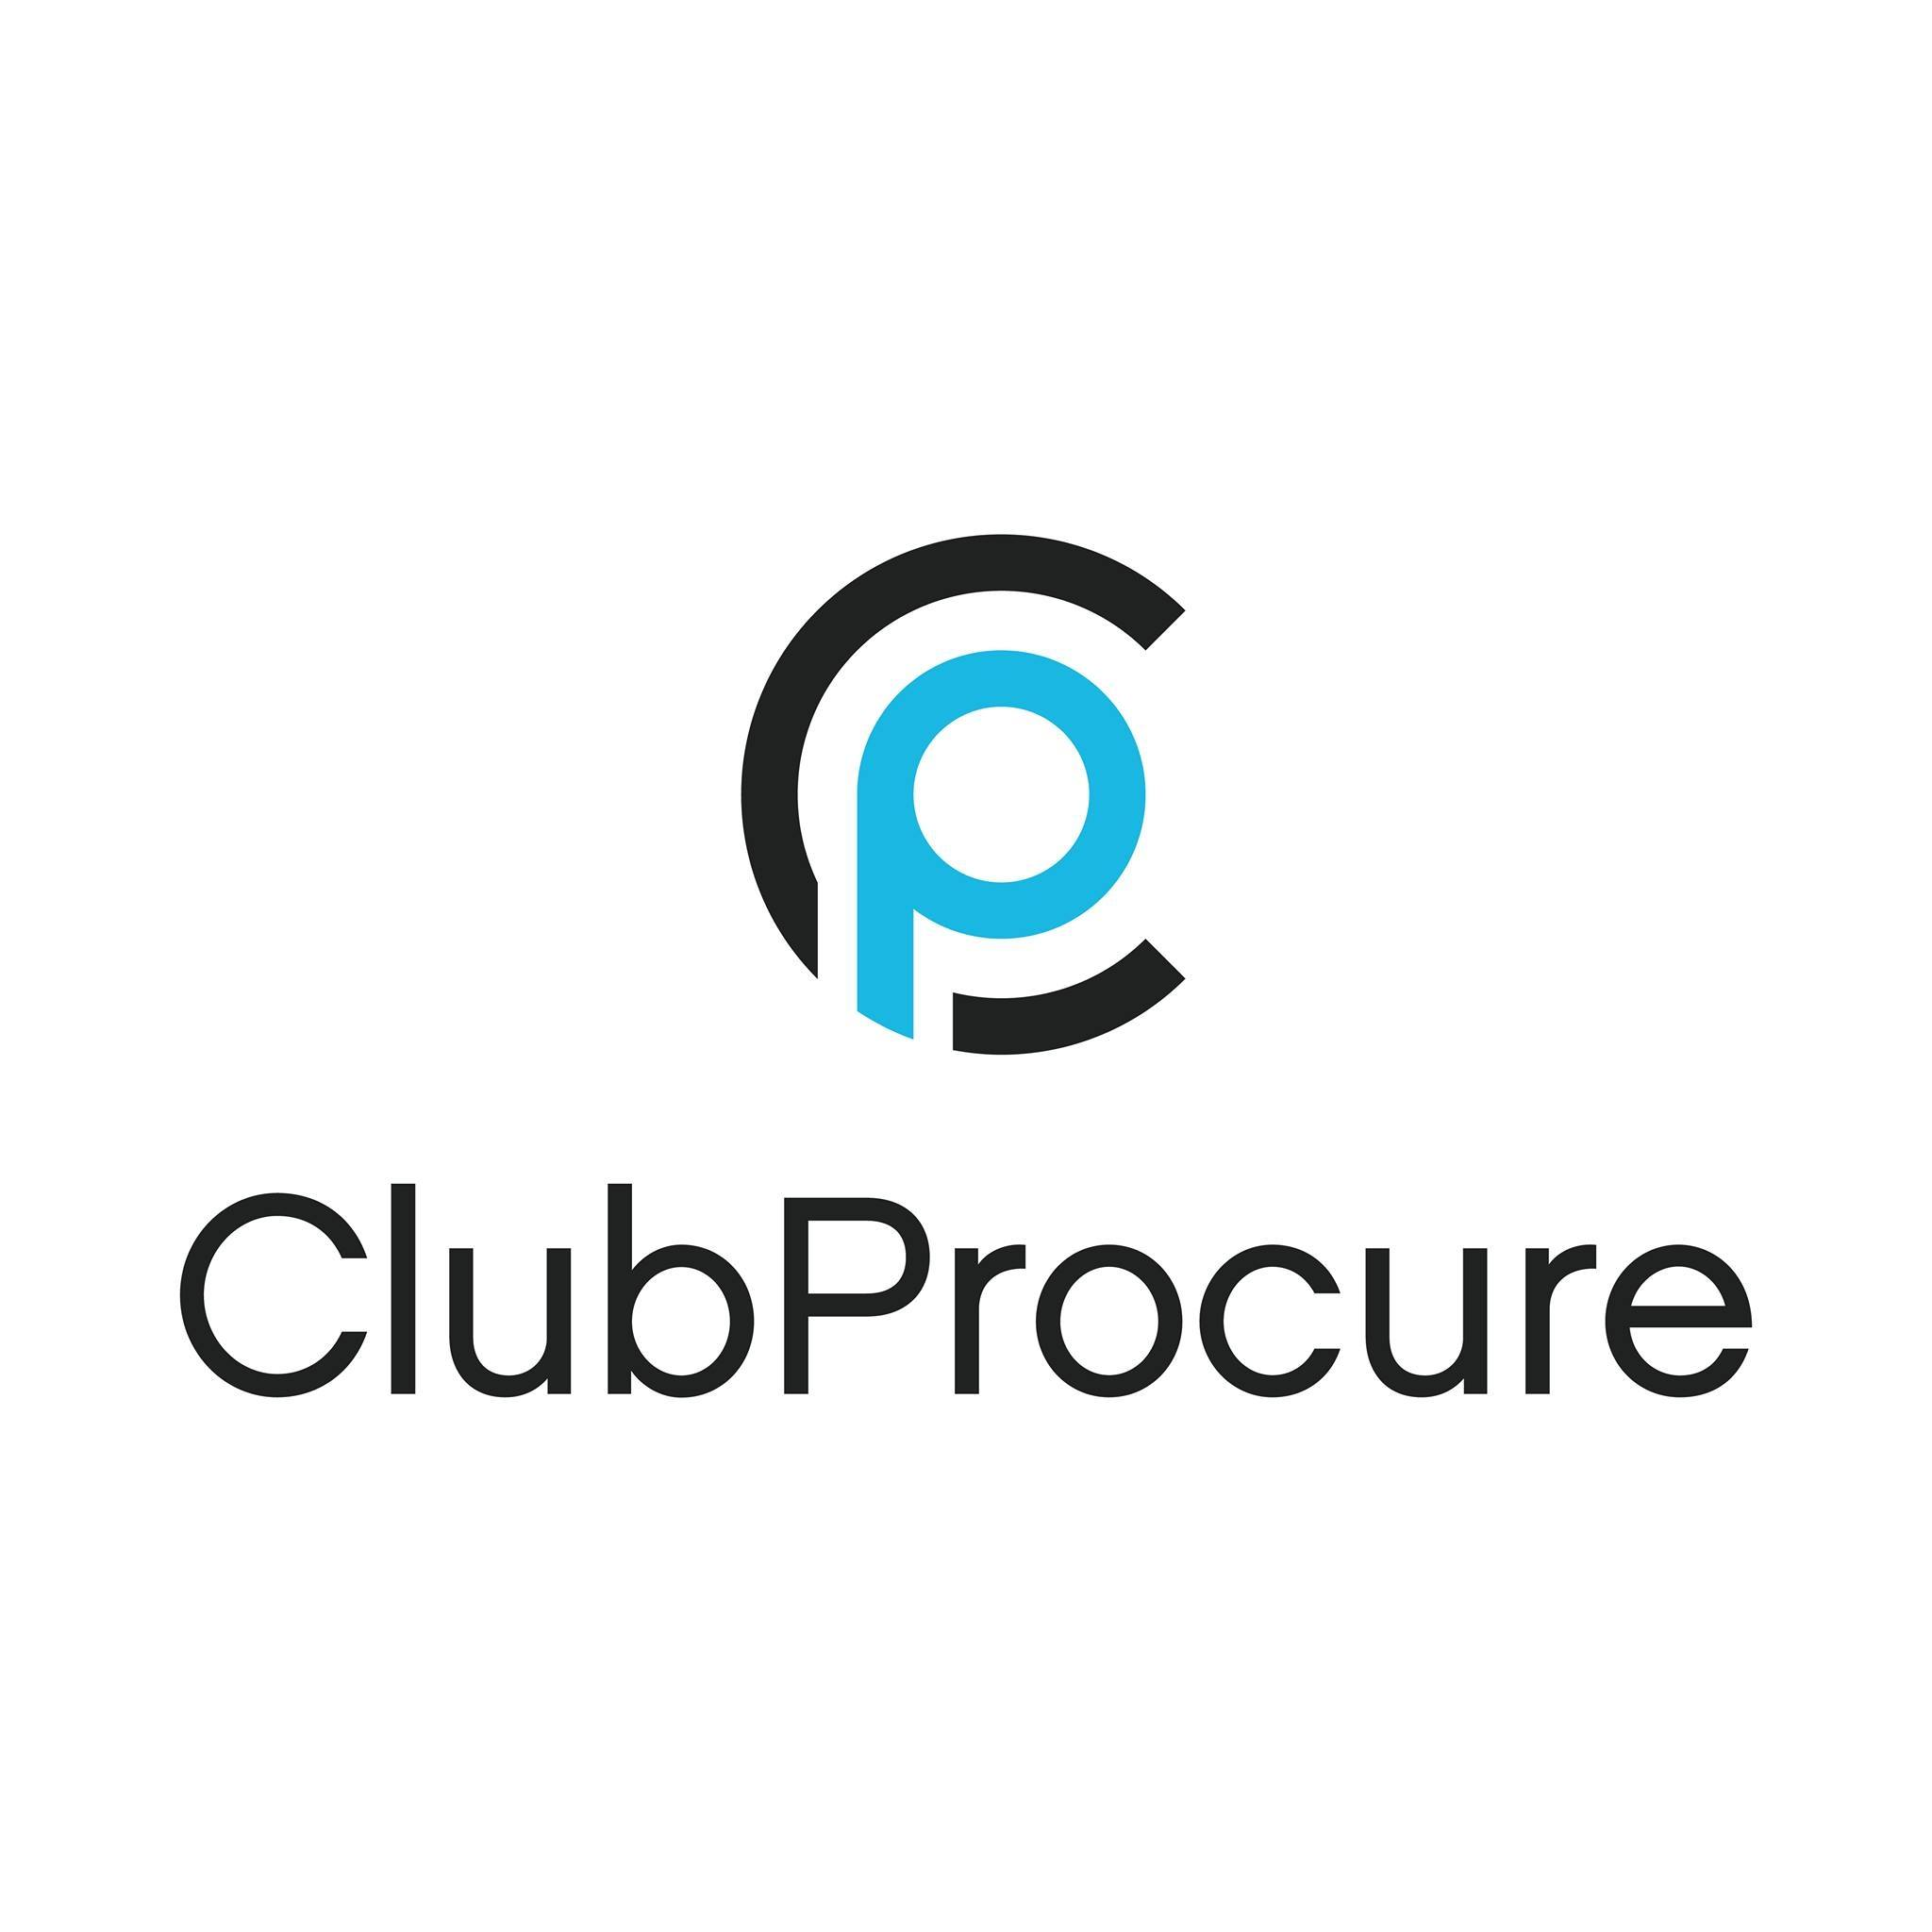 VGM Club rebrands as ClubProcure symbolizing services to superintendents  and club managers - The Golf Wire